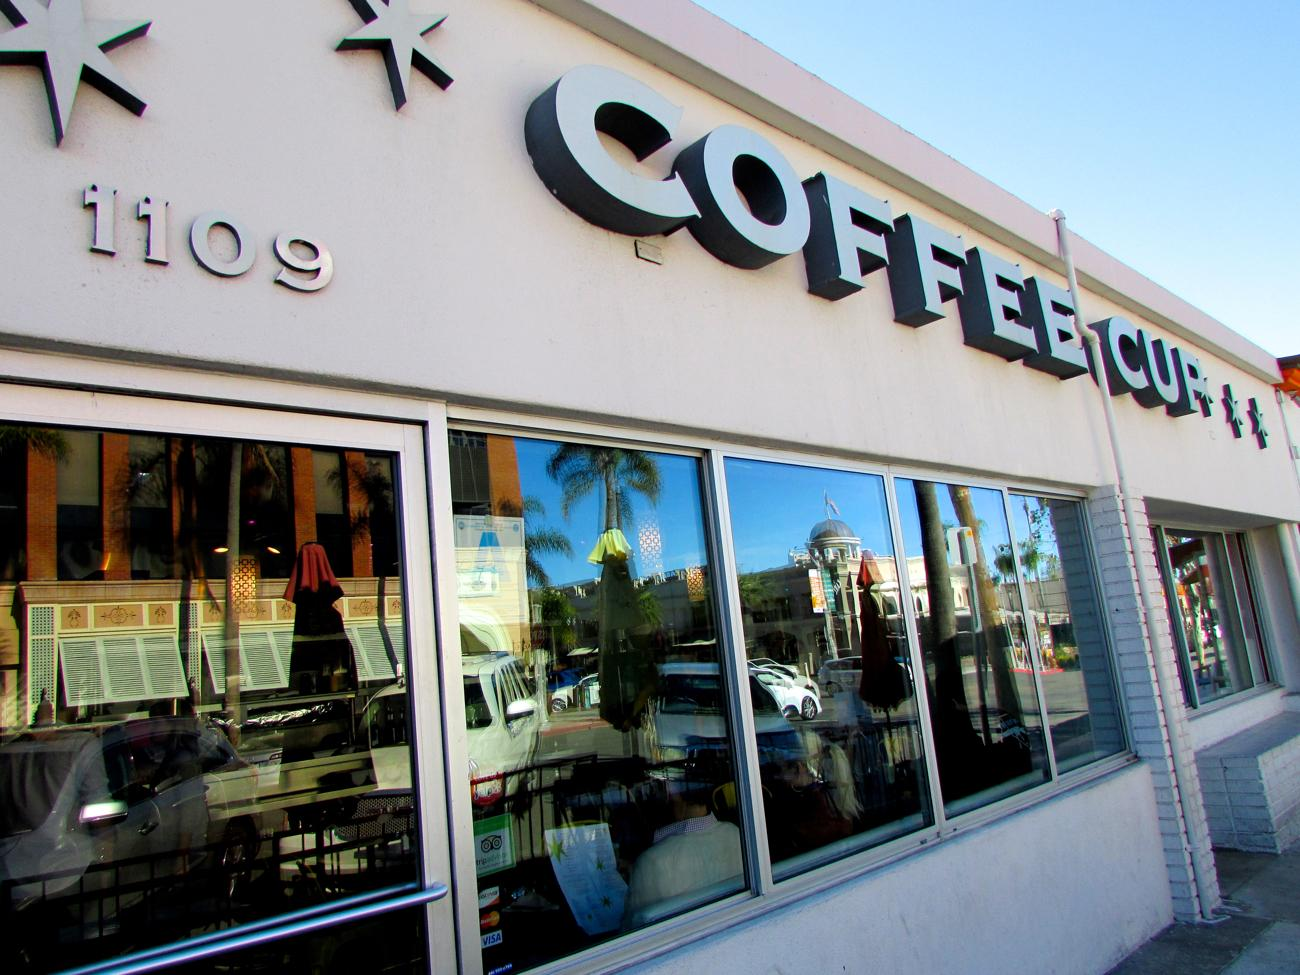 Coffee Cup Cafe - **OUR FAVORITEIncredibly delicious (and healthy) breakfasts, lunches and brunchRecs: The Pancake of the Day and The Omar